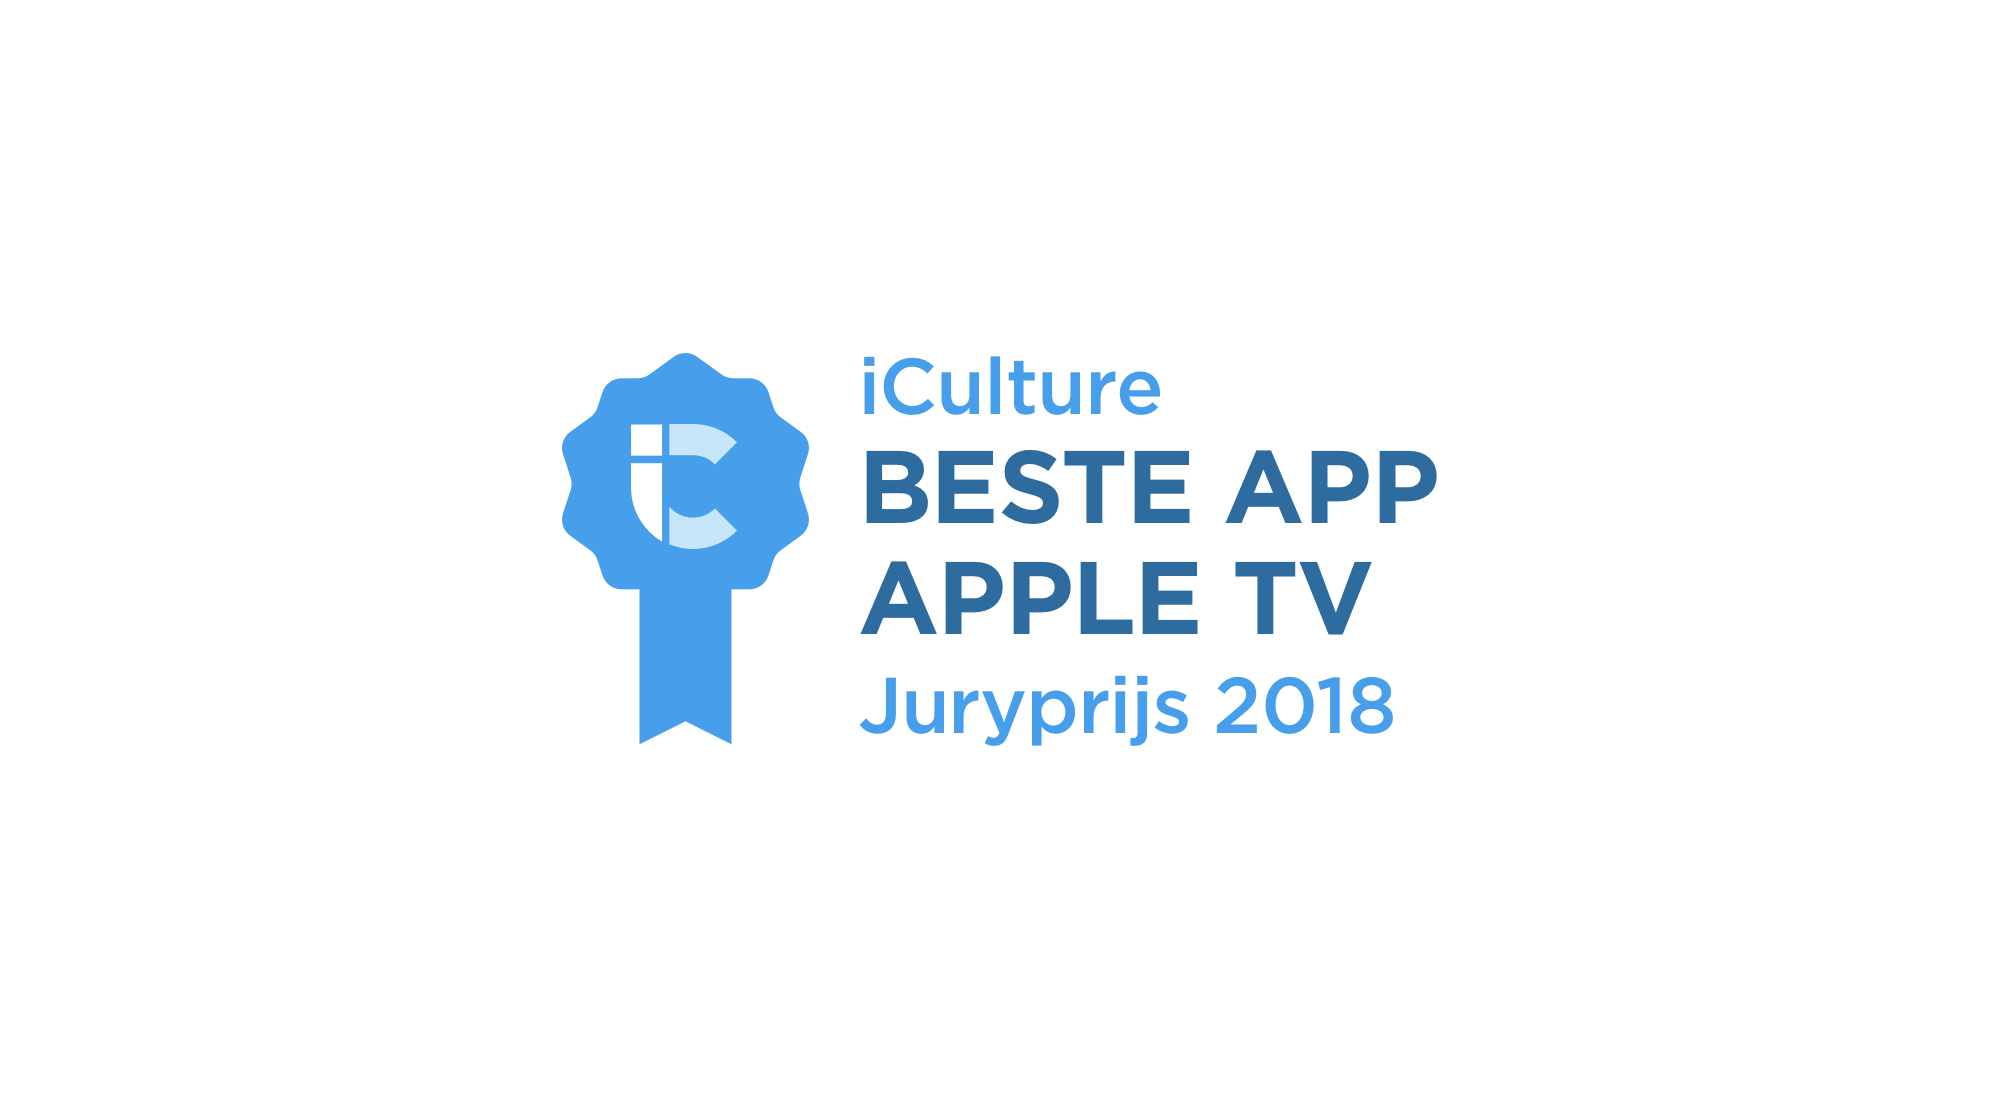 Beste app Apple TV 2018.